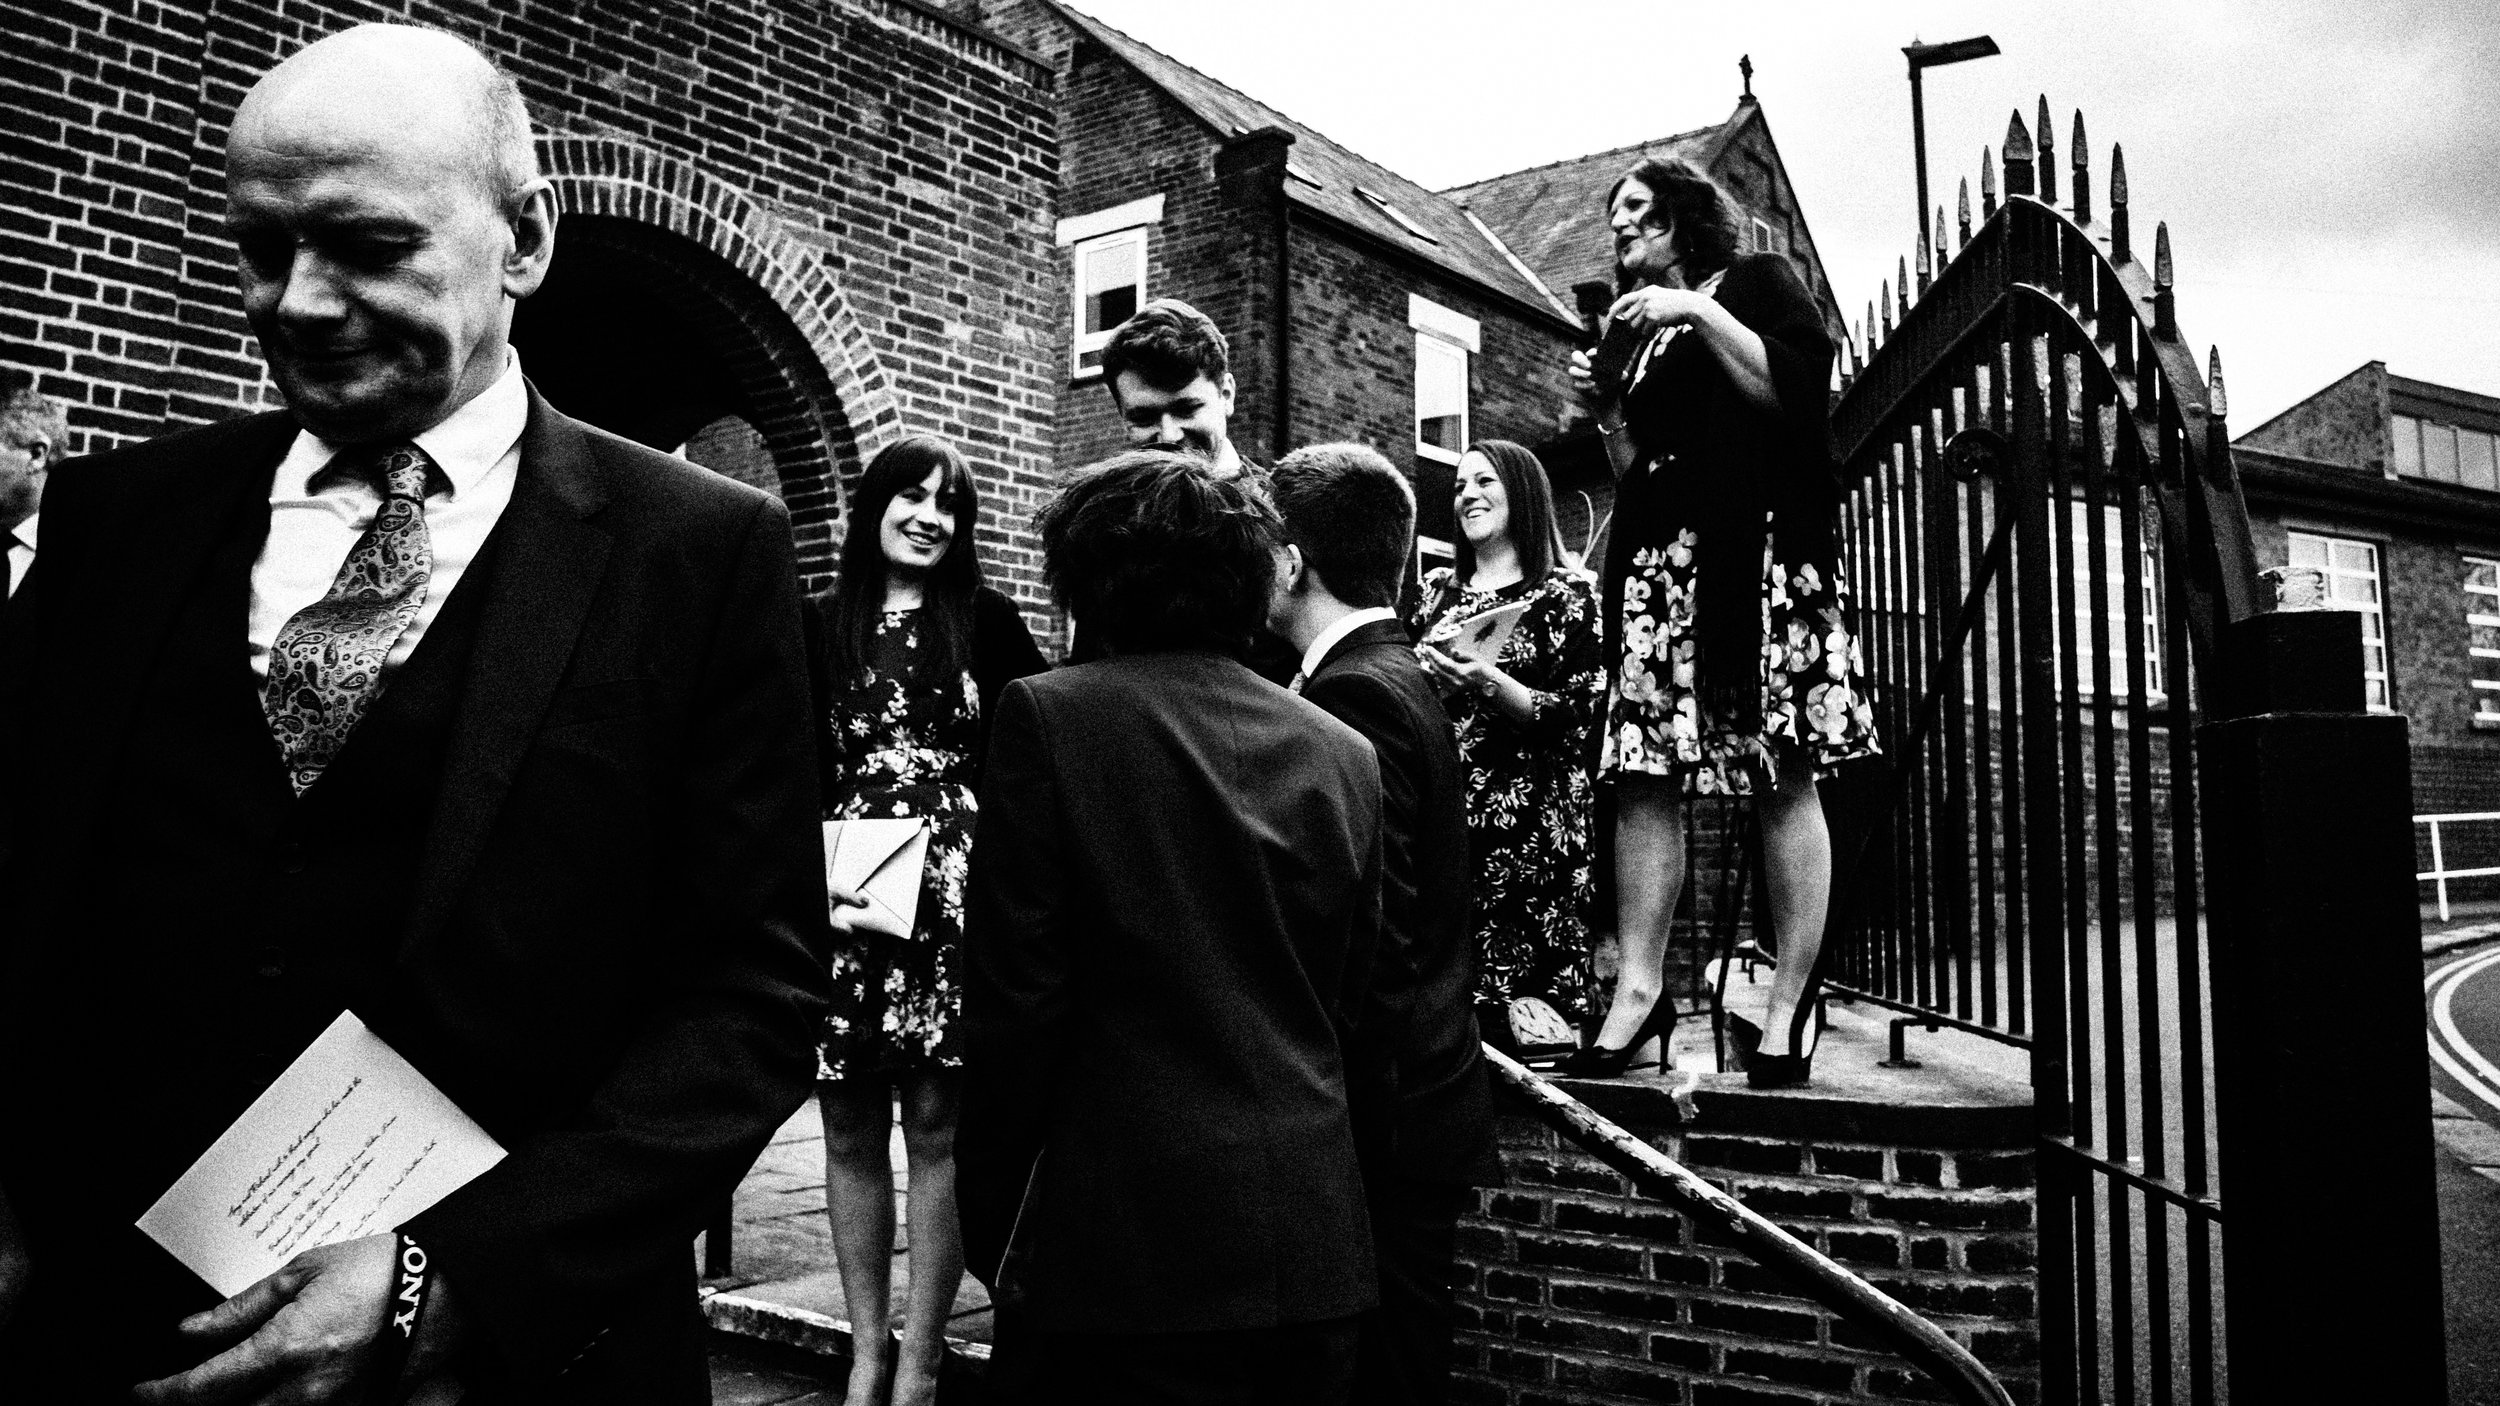 Wedding guests trying to get a better view of the bride and groom